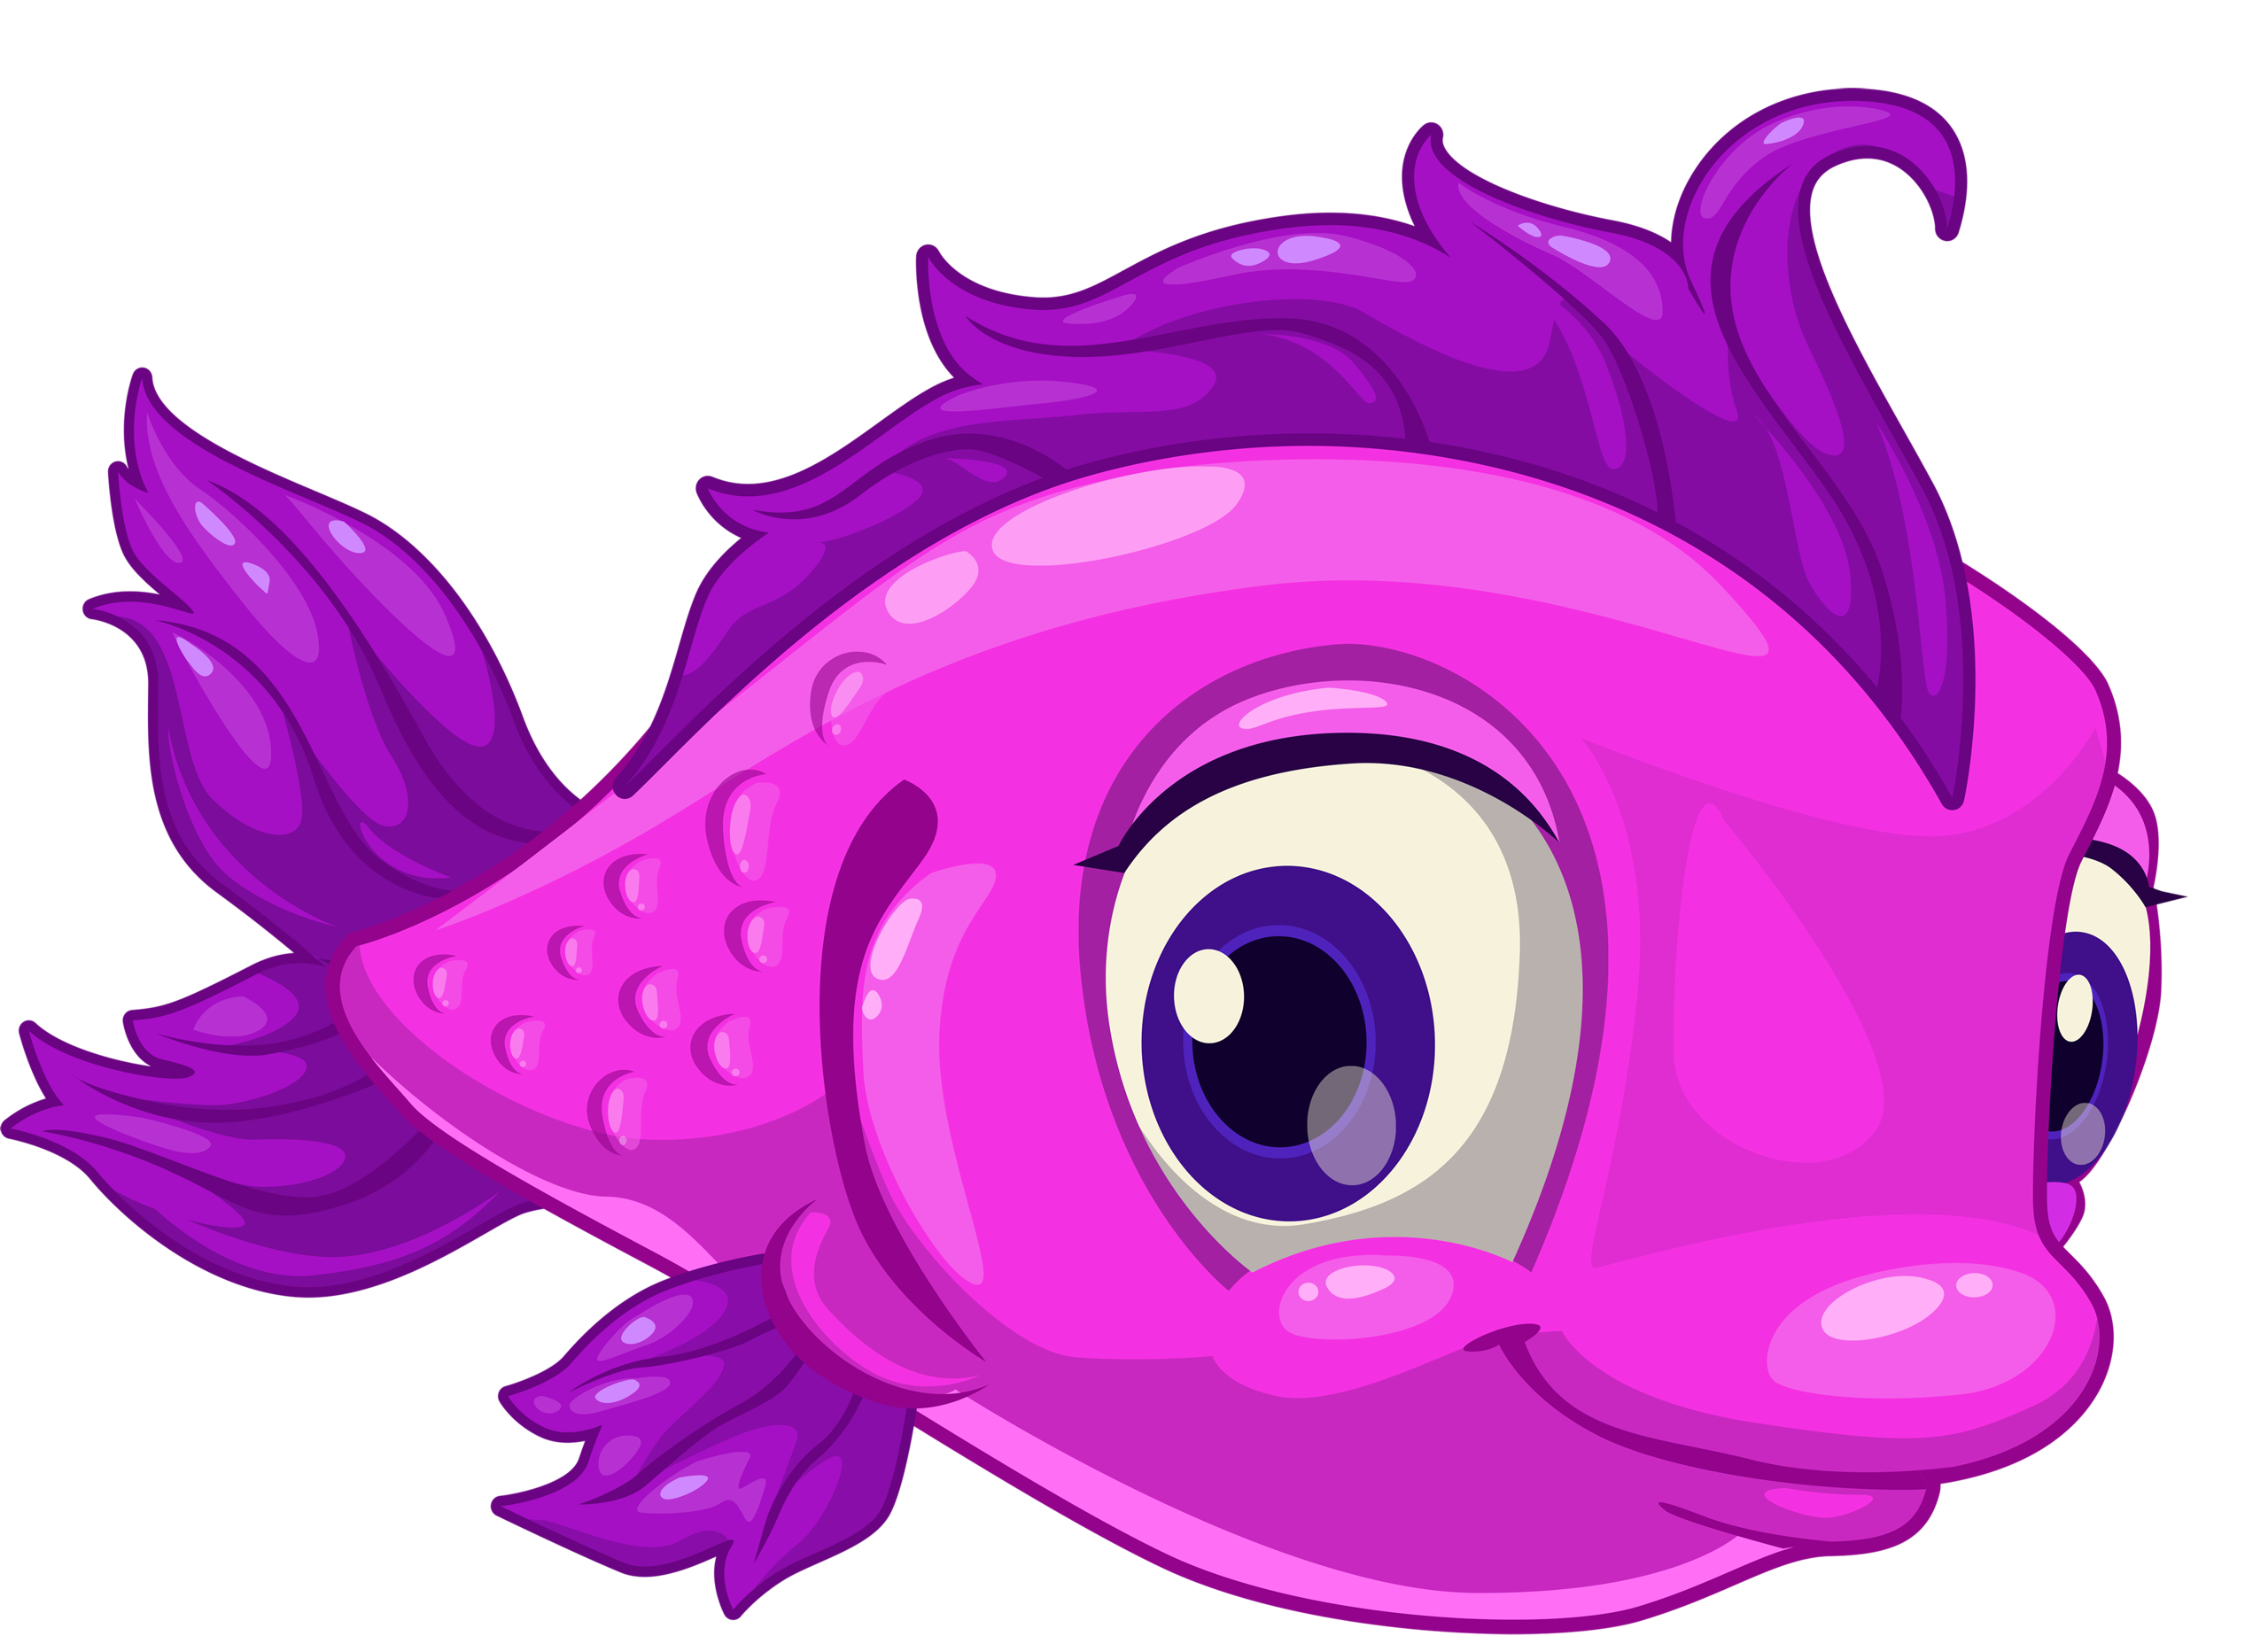 clam chlamydia huge. Dory clipart puffer fish